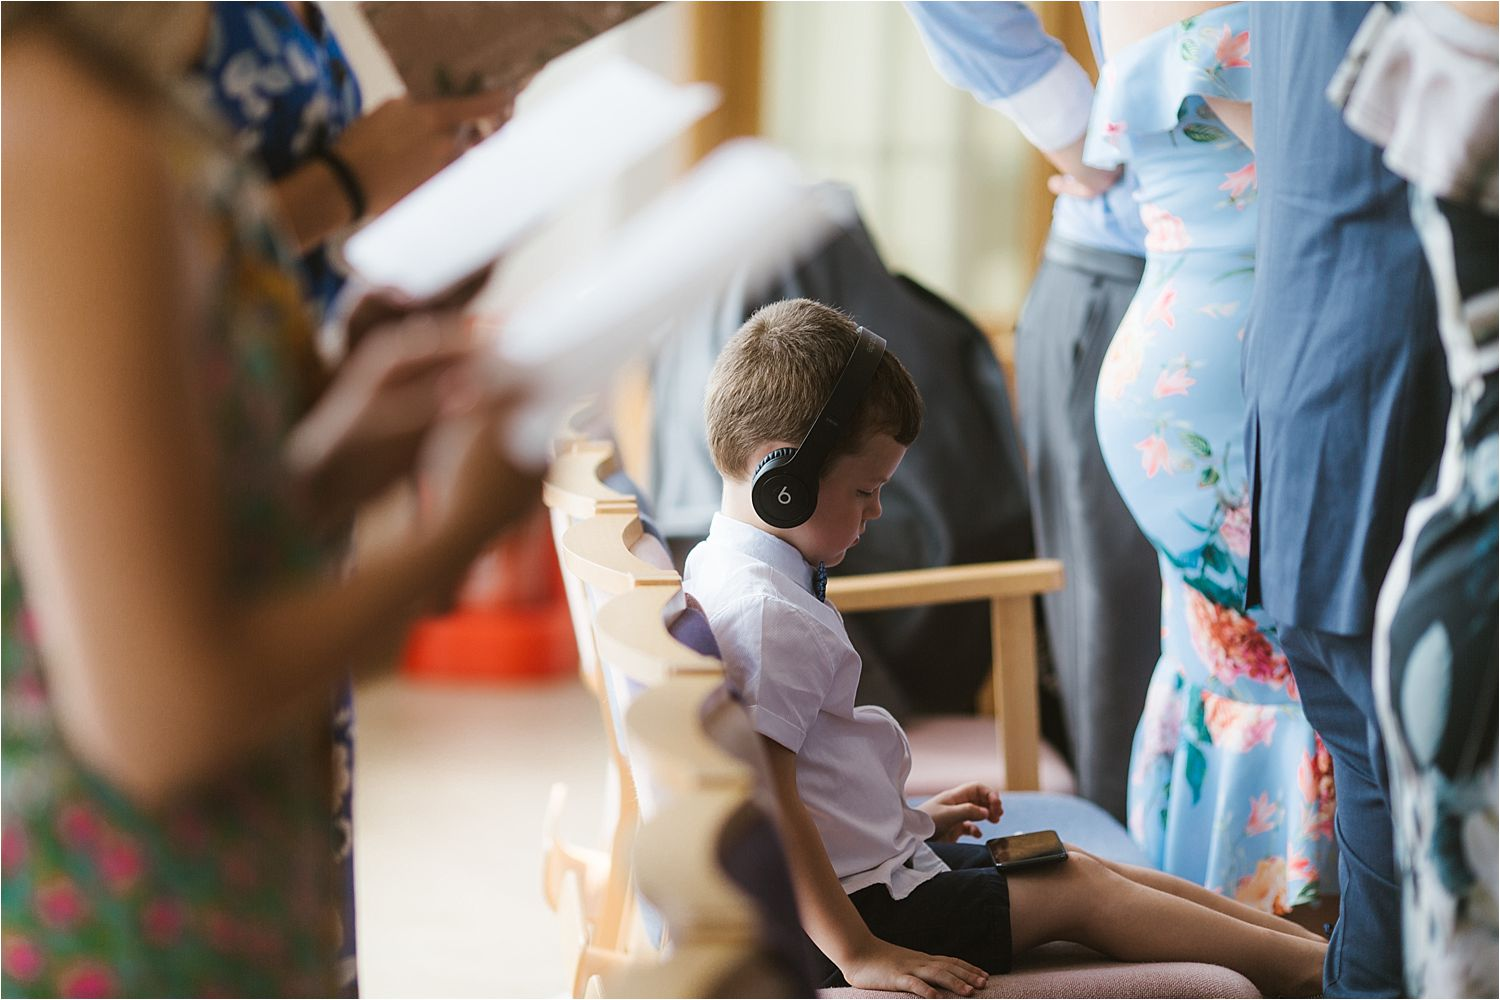 Junior guest with headphones during wedding ceremony at Sandhole Oak Barn